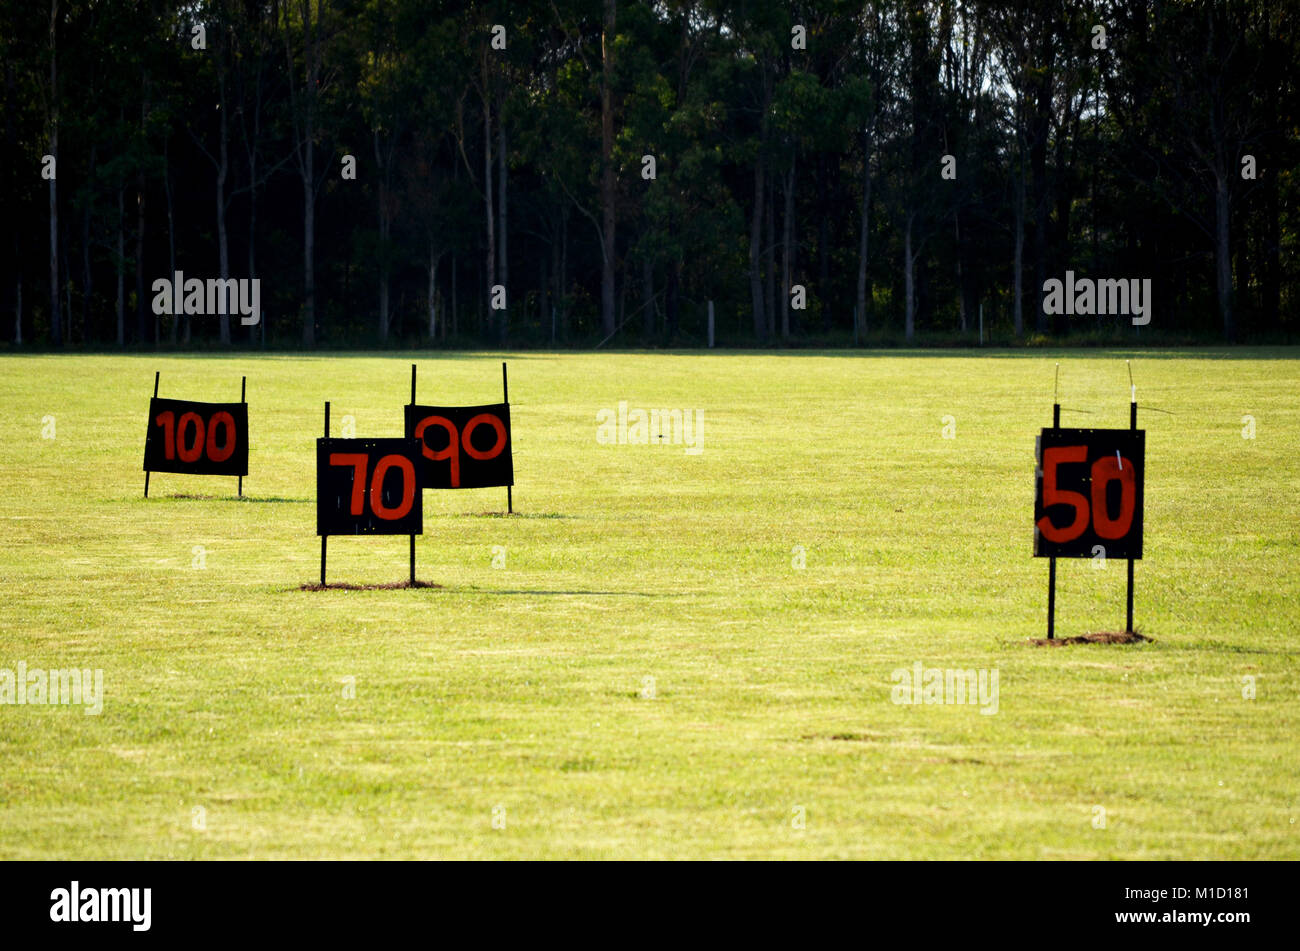 Golf-driving-range Stockbild